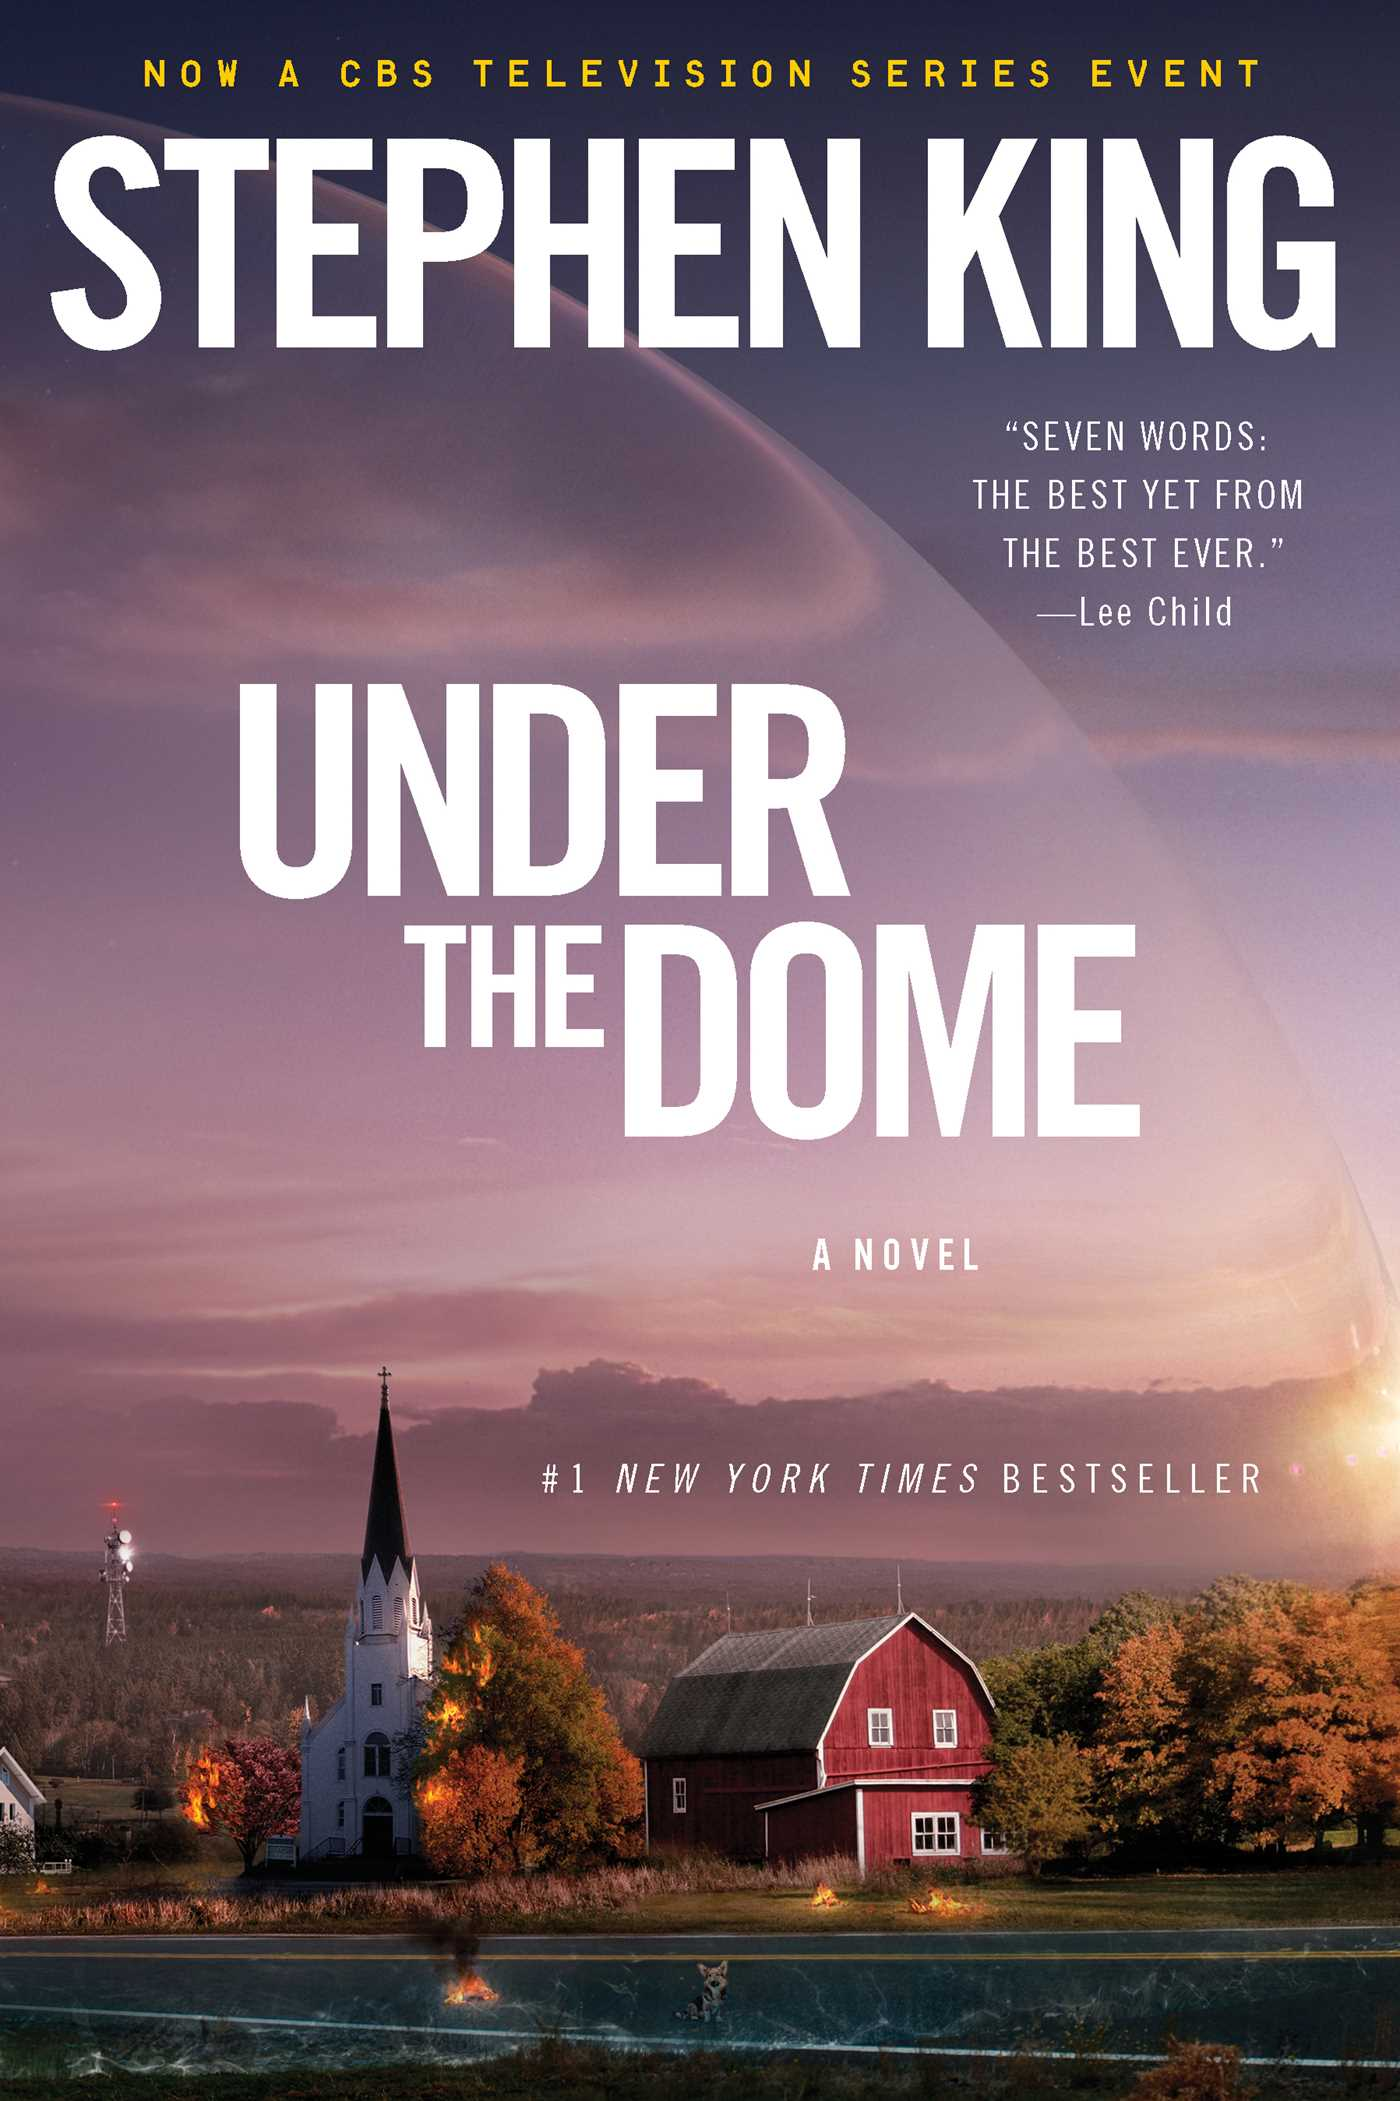 Under-the-dome-9781439168035_hr